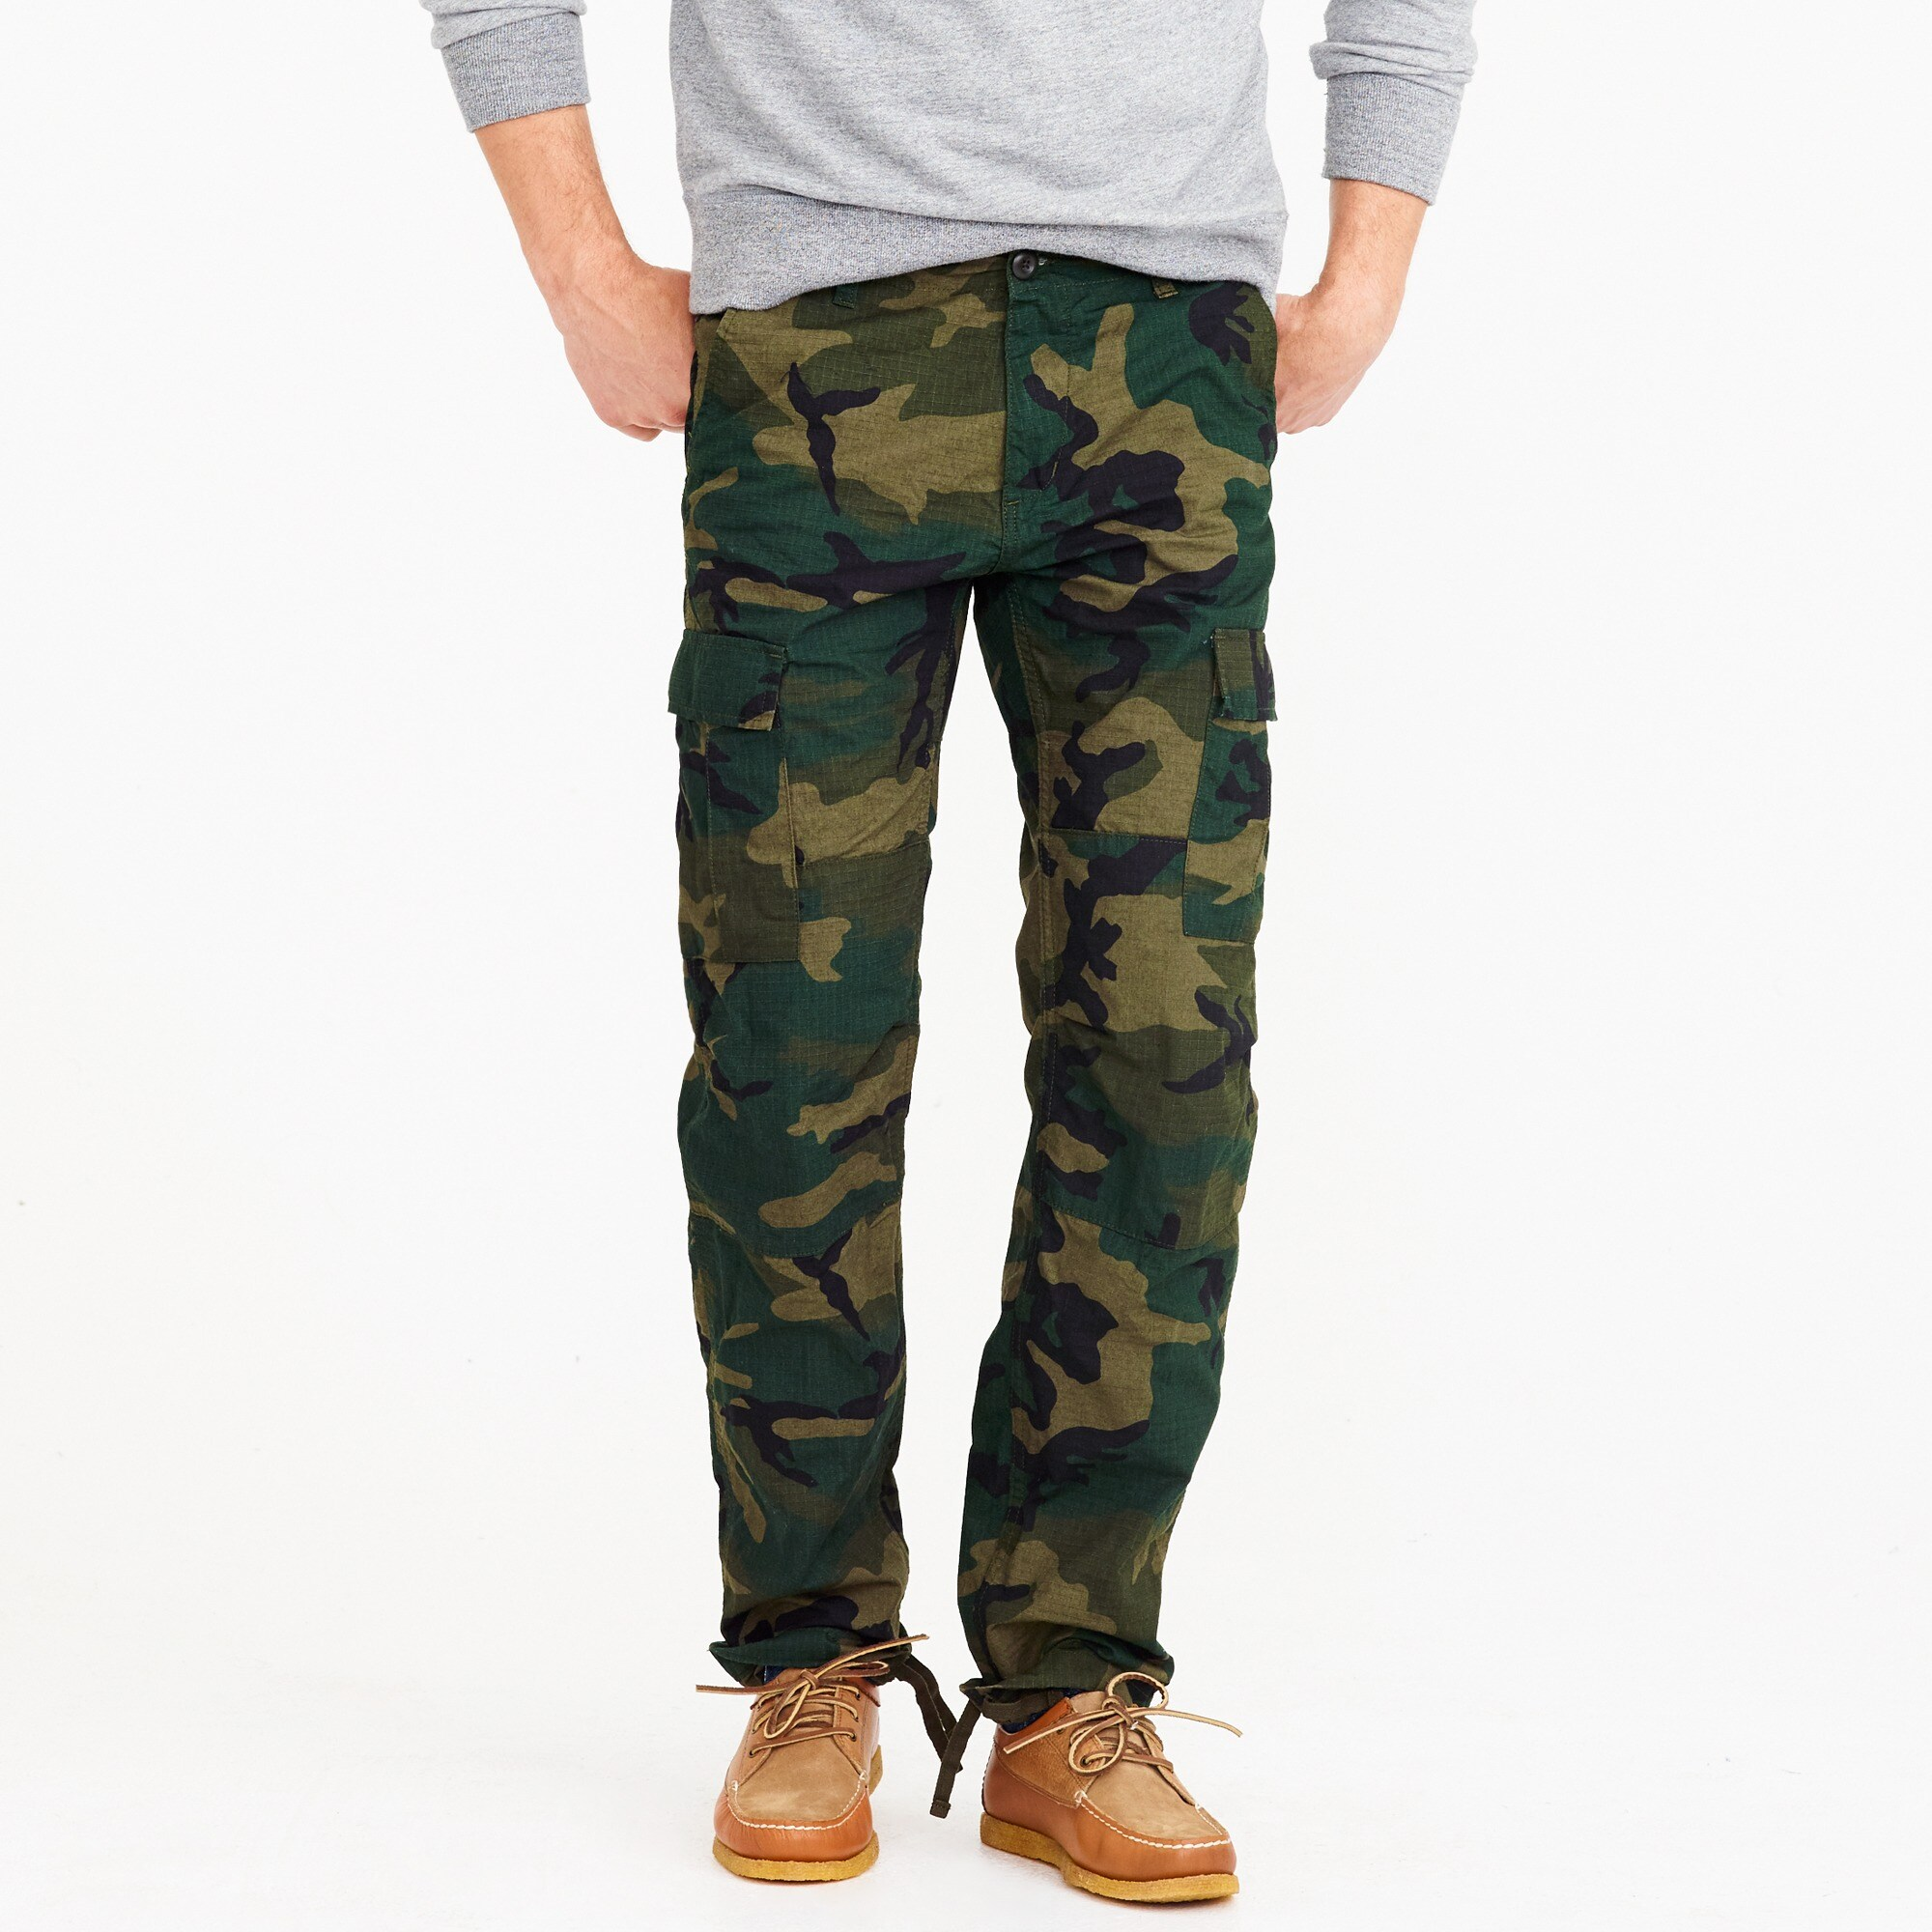 Image 1 for Carhartt® Work in Progress pant in camo